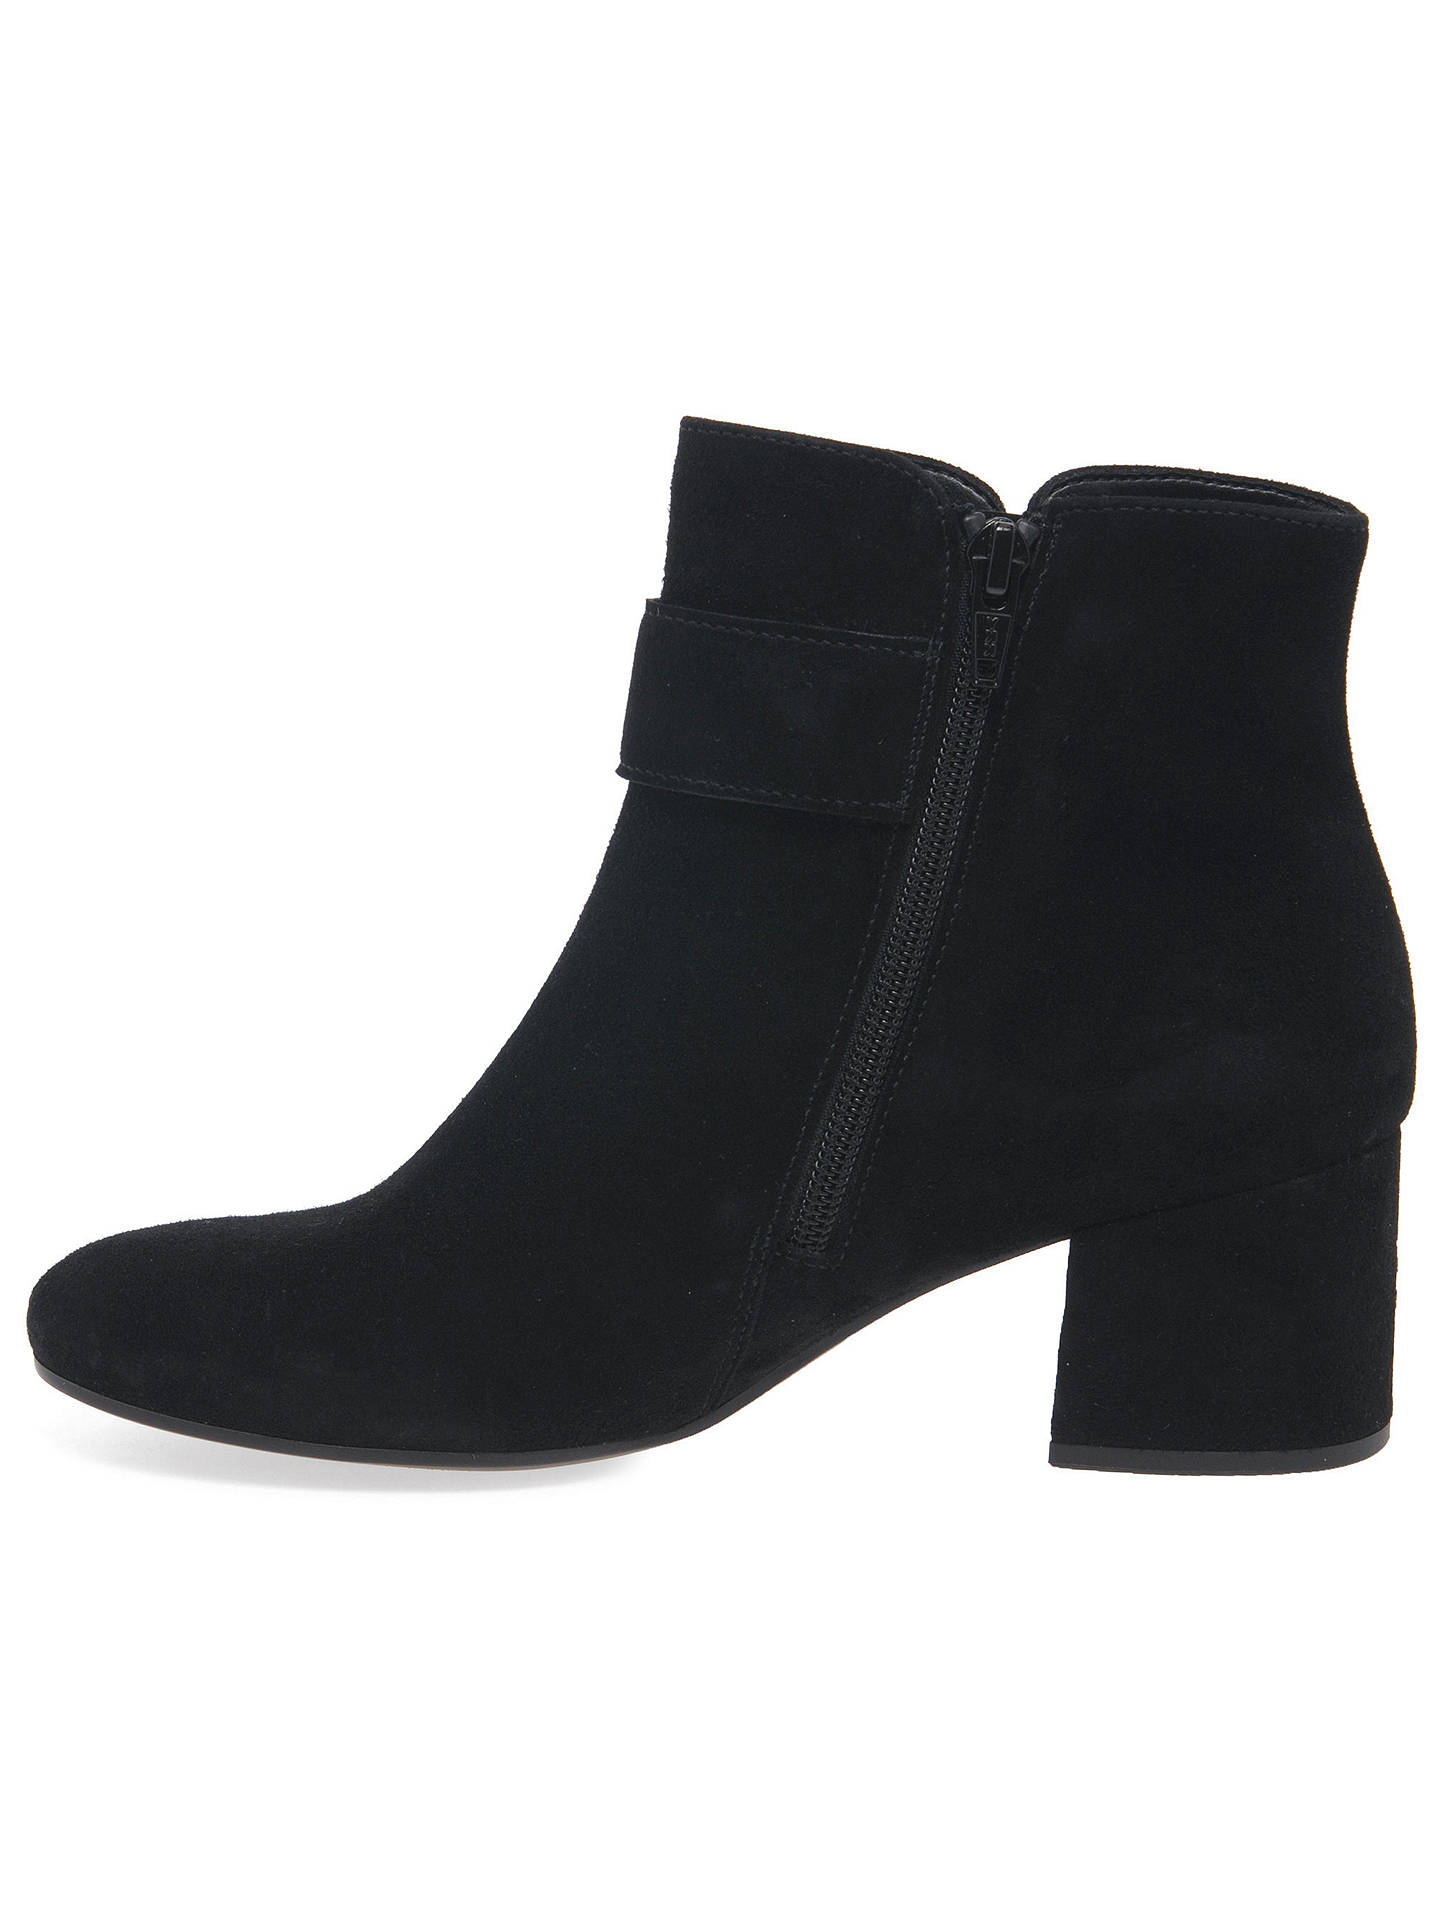 9ccee5f3638 Gabor Capri Buckle Block Heel Ankle Boots, Black Suede at John Lewis ...